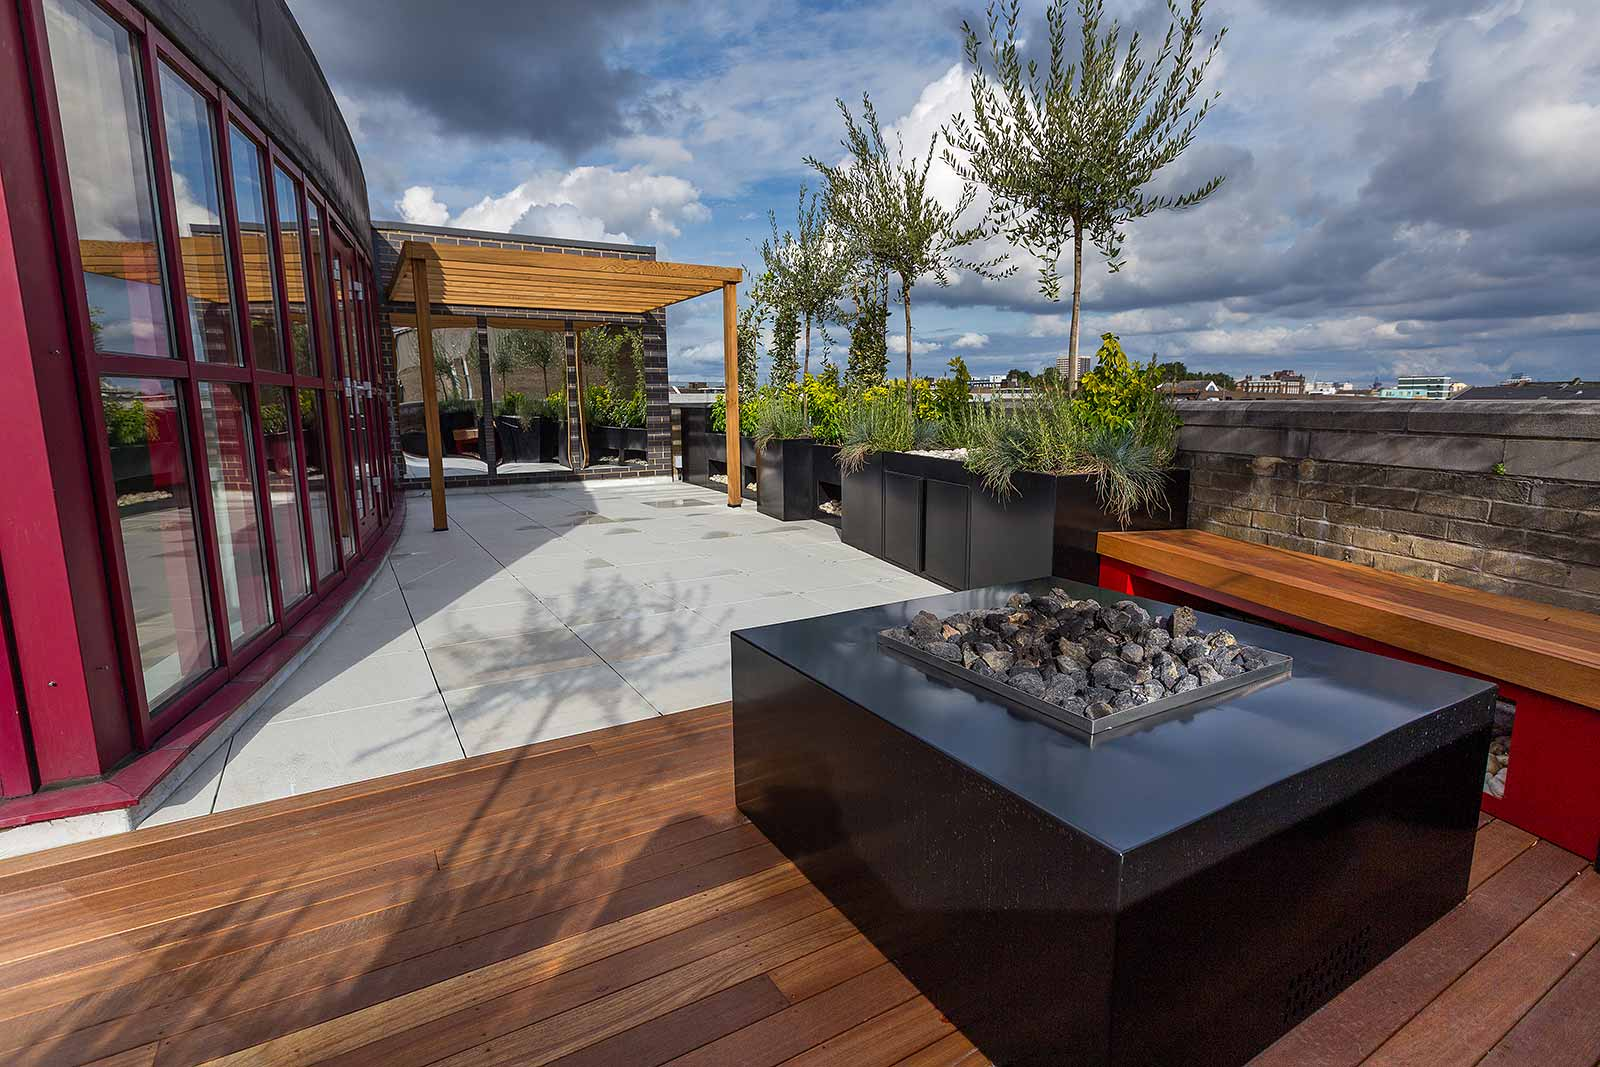 Shoreditch roof terrace design in london for Household design shoreditch